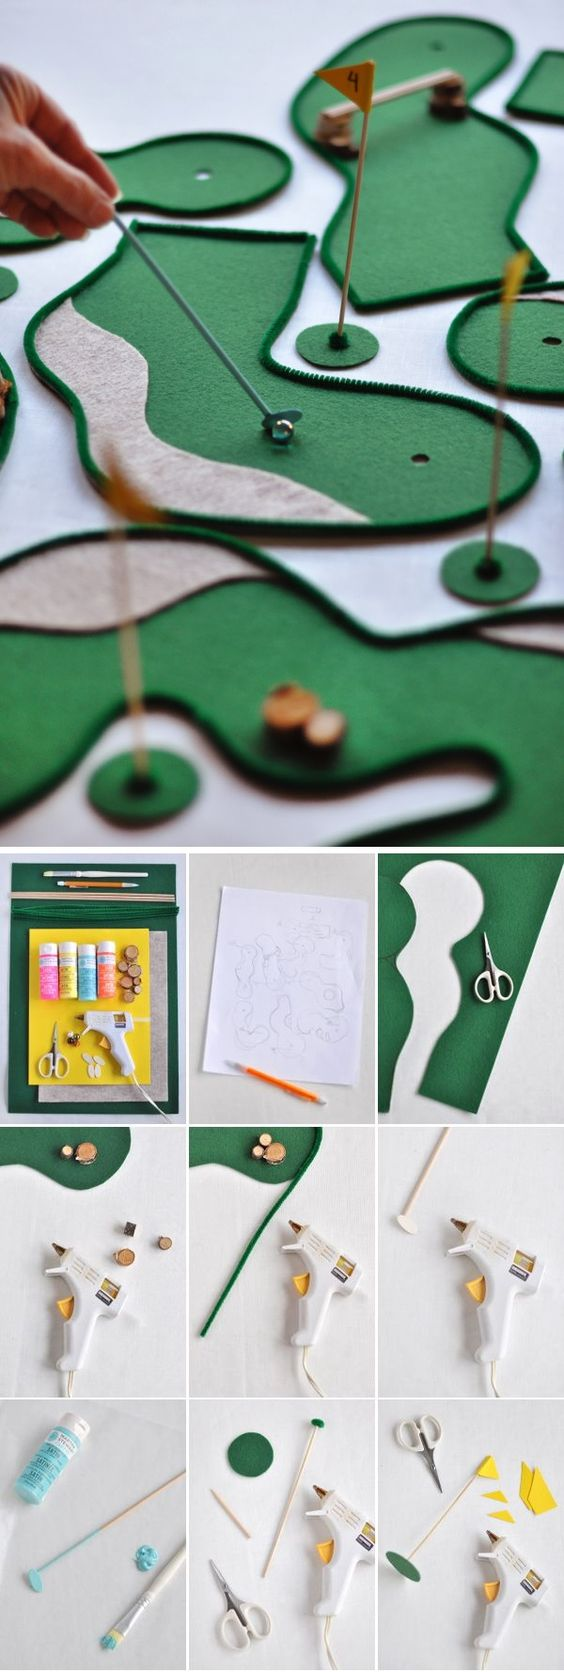 Tabletop Golf And Happy Day On Pinterest